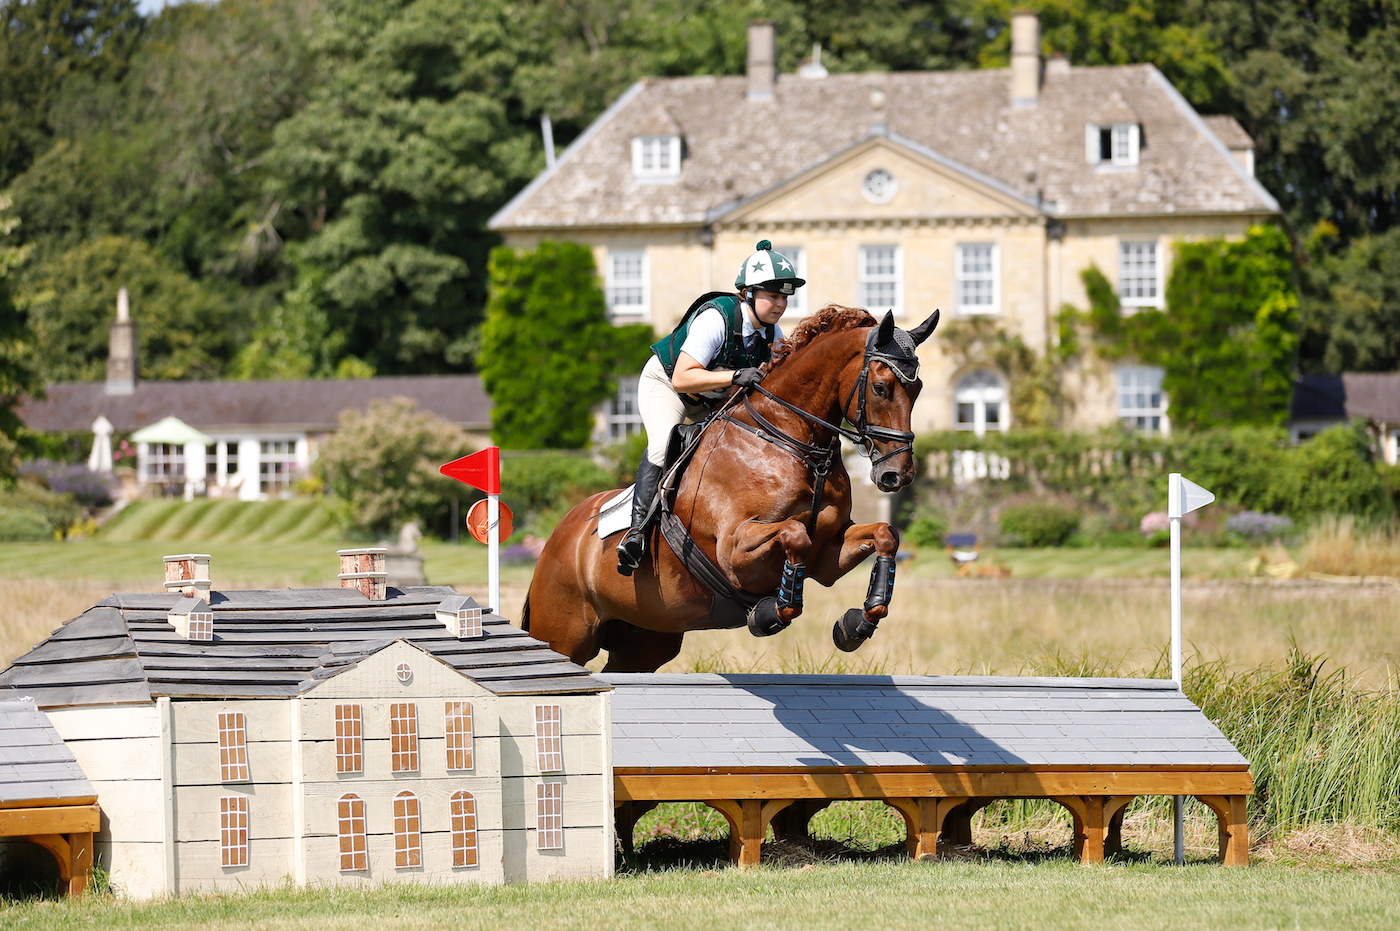 £10,000 prize pot on offer in new unaffiliated eventing series